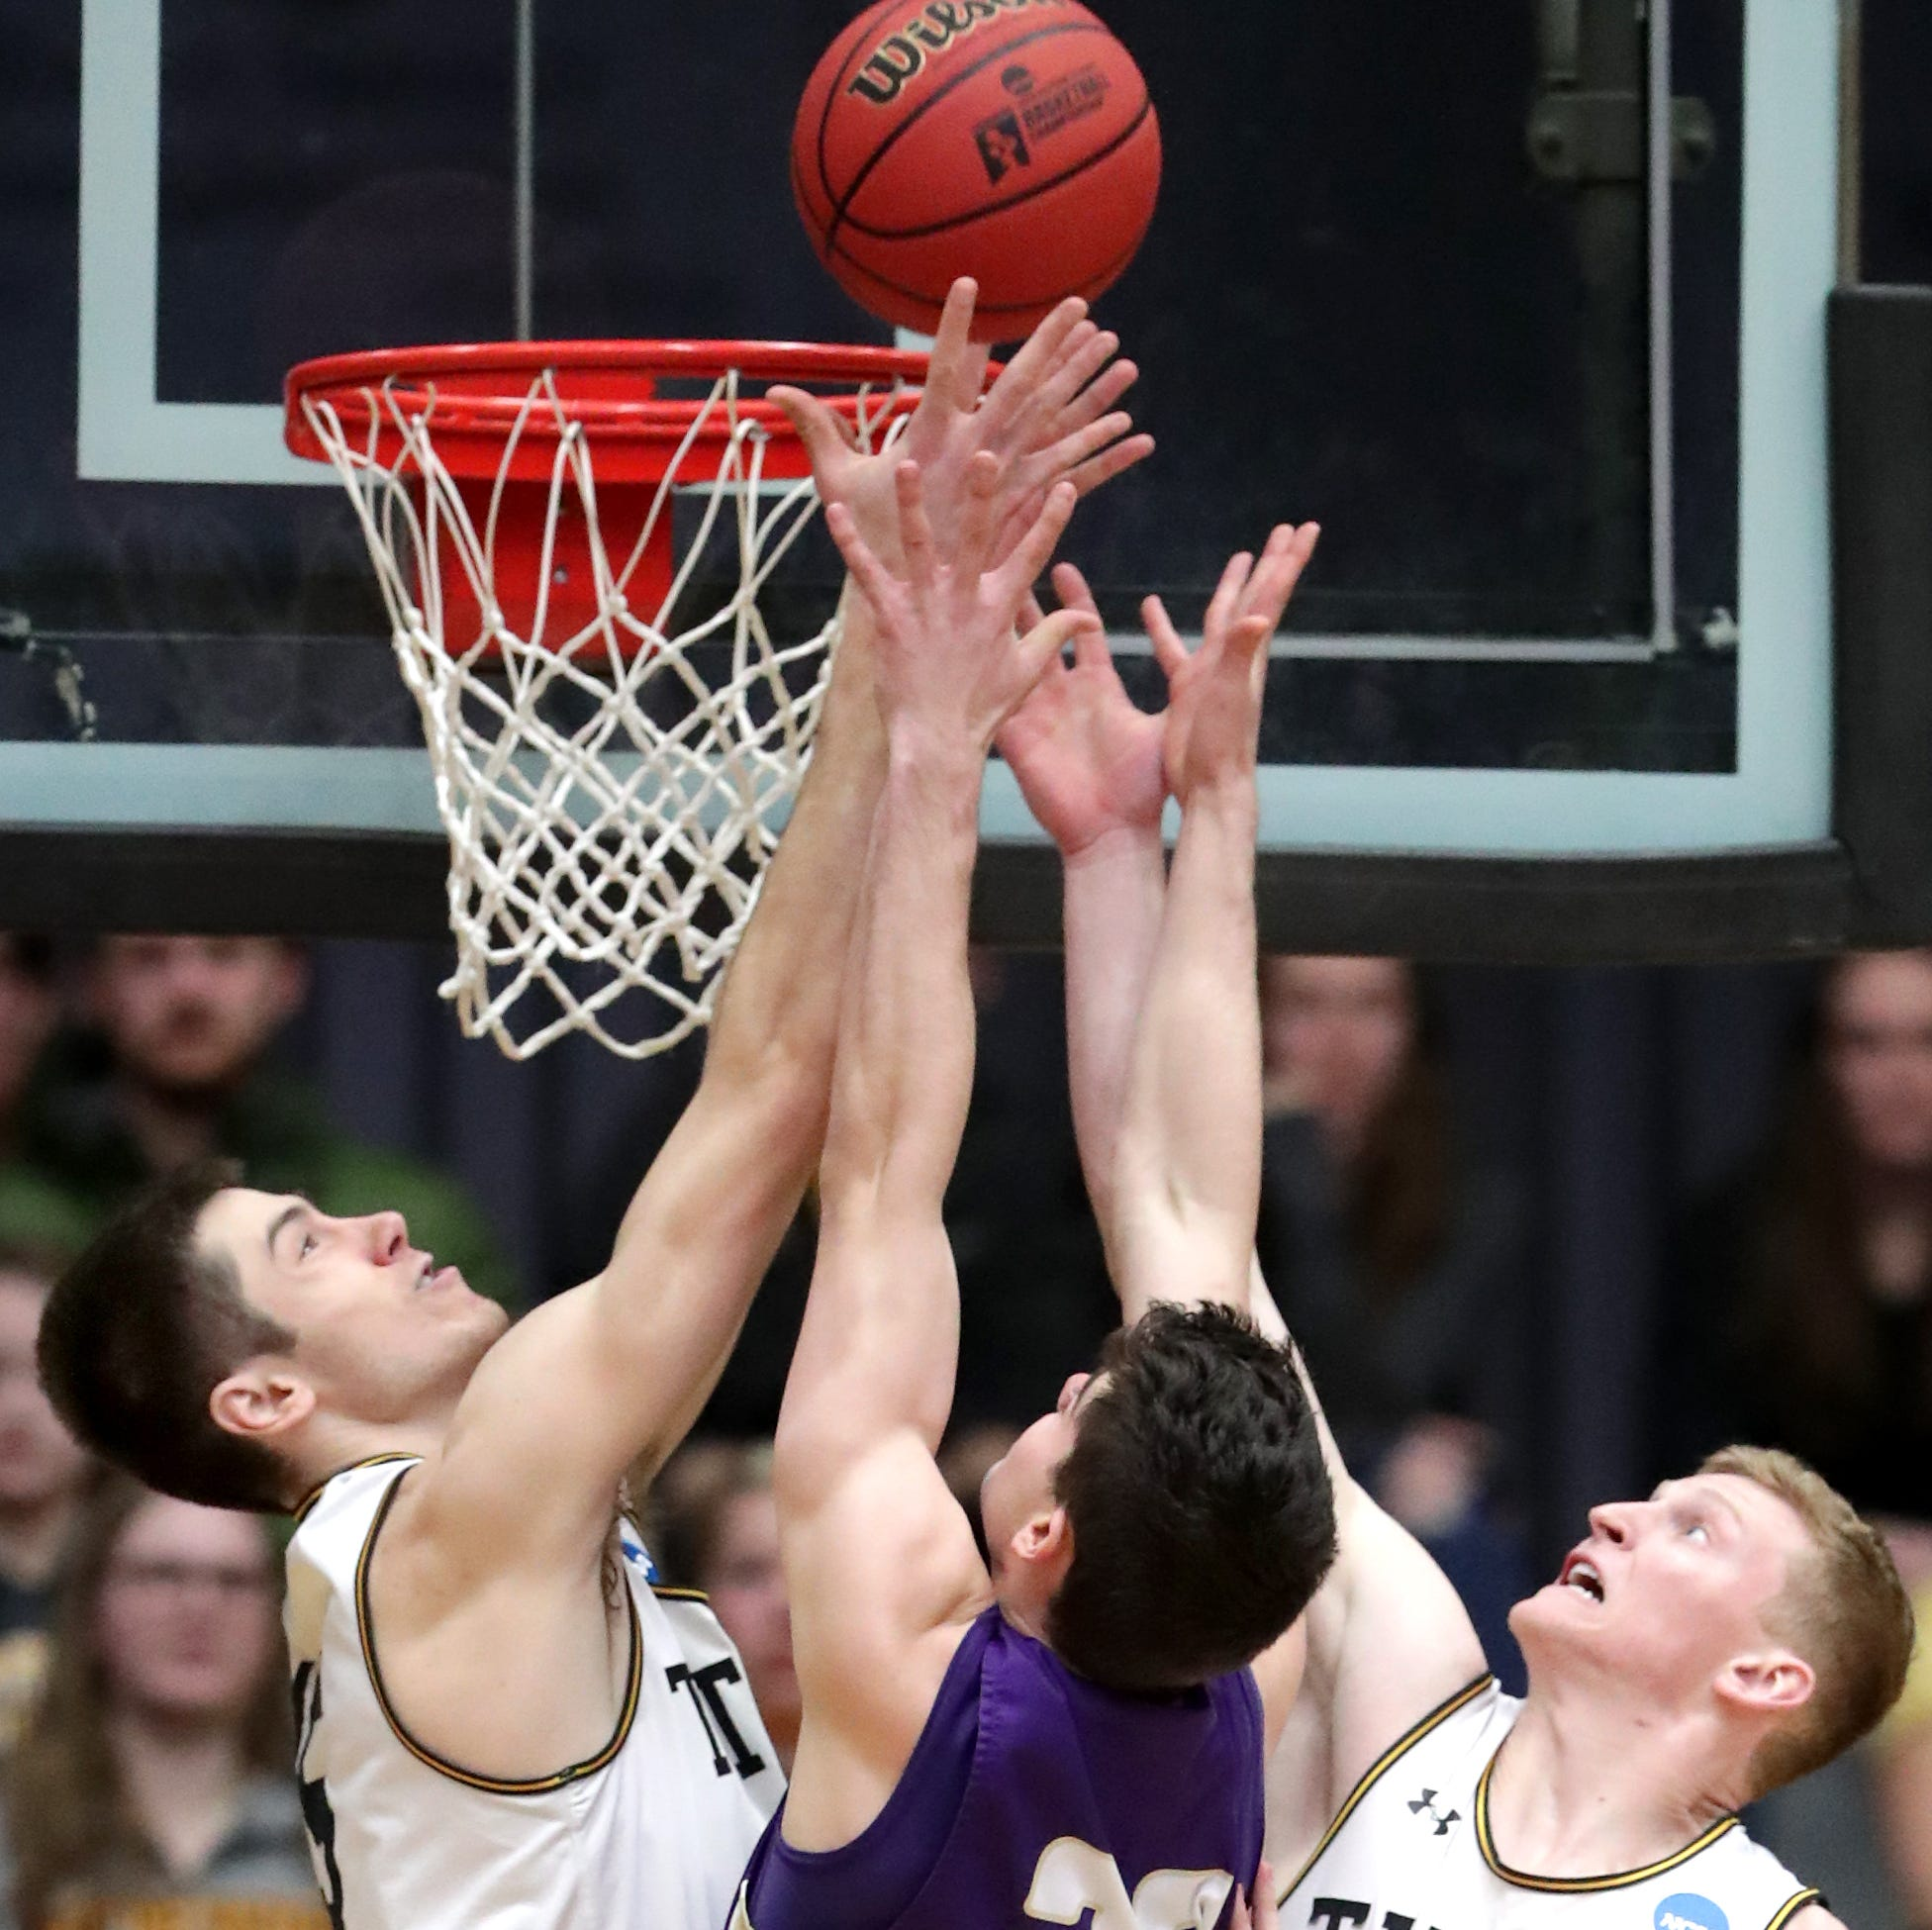 UW-Oshkosh beats Loras to move within one victory of return trip to Division III Final Four